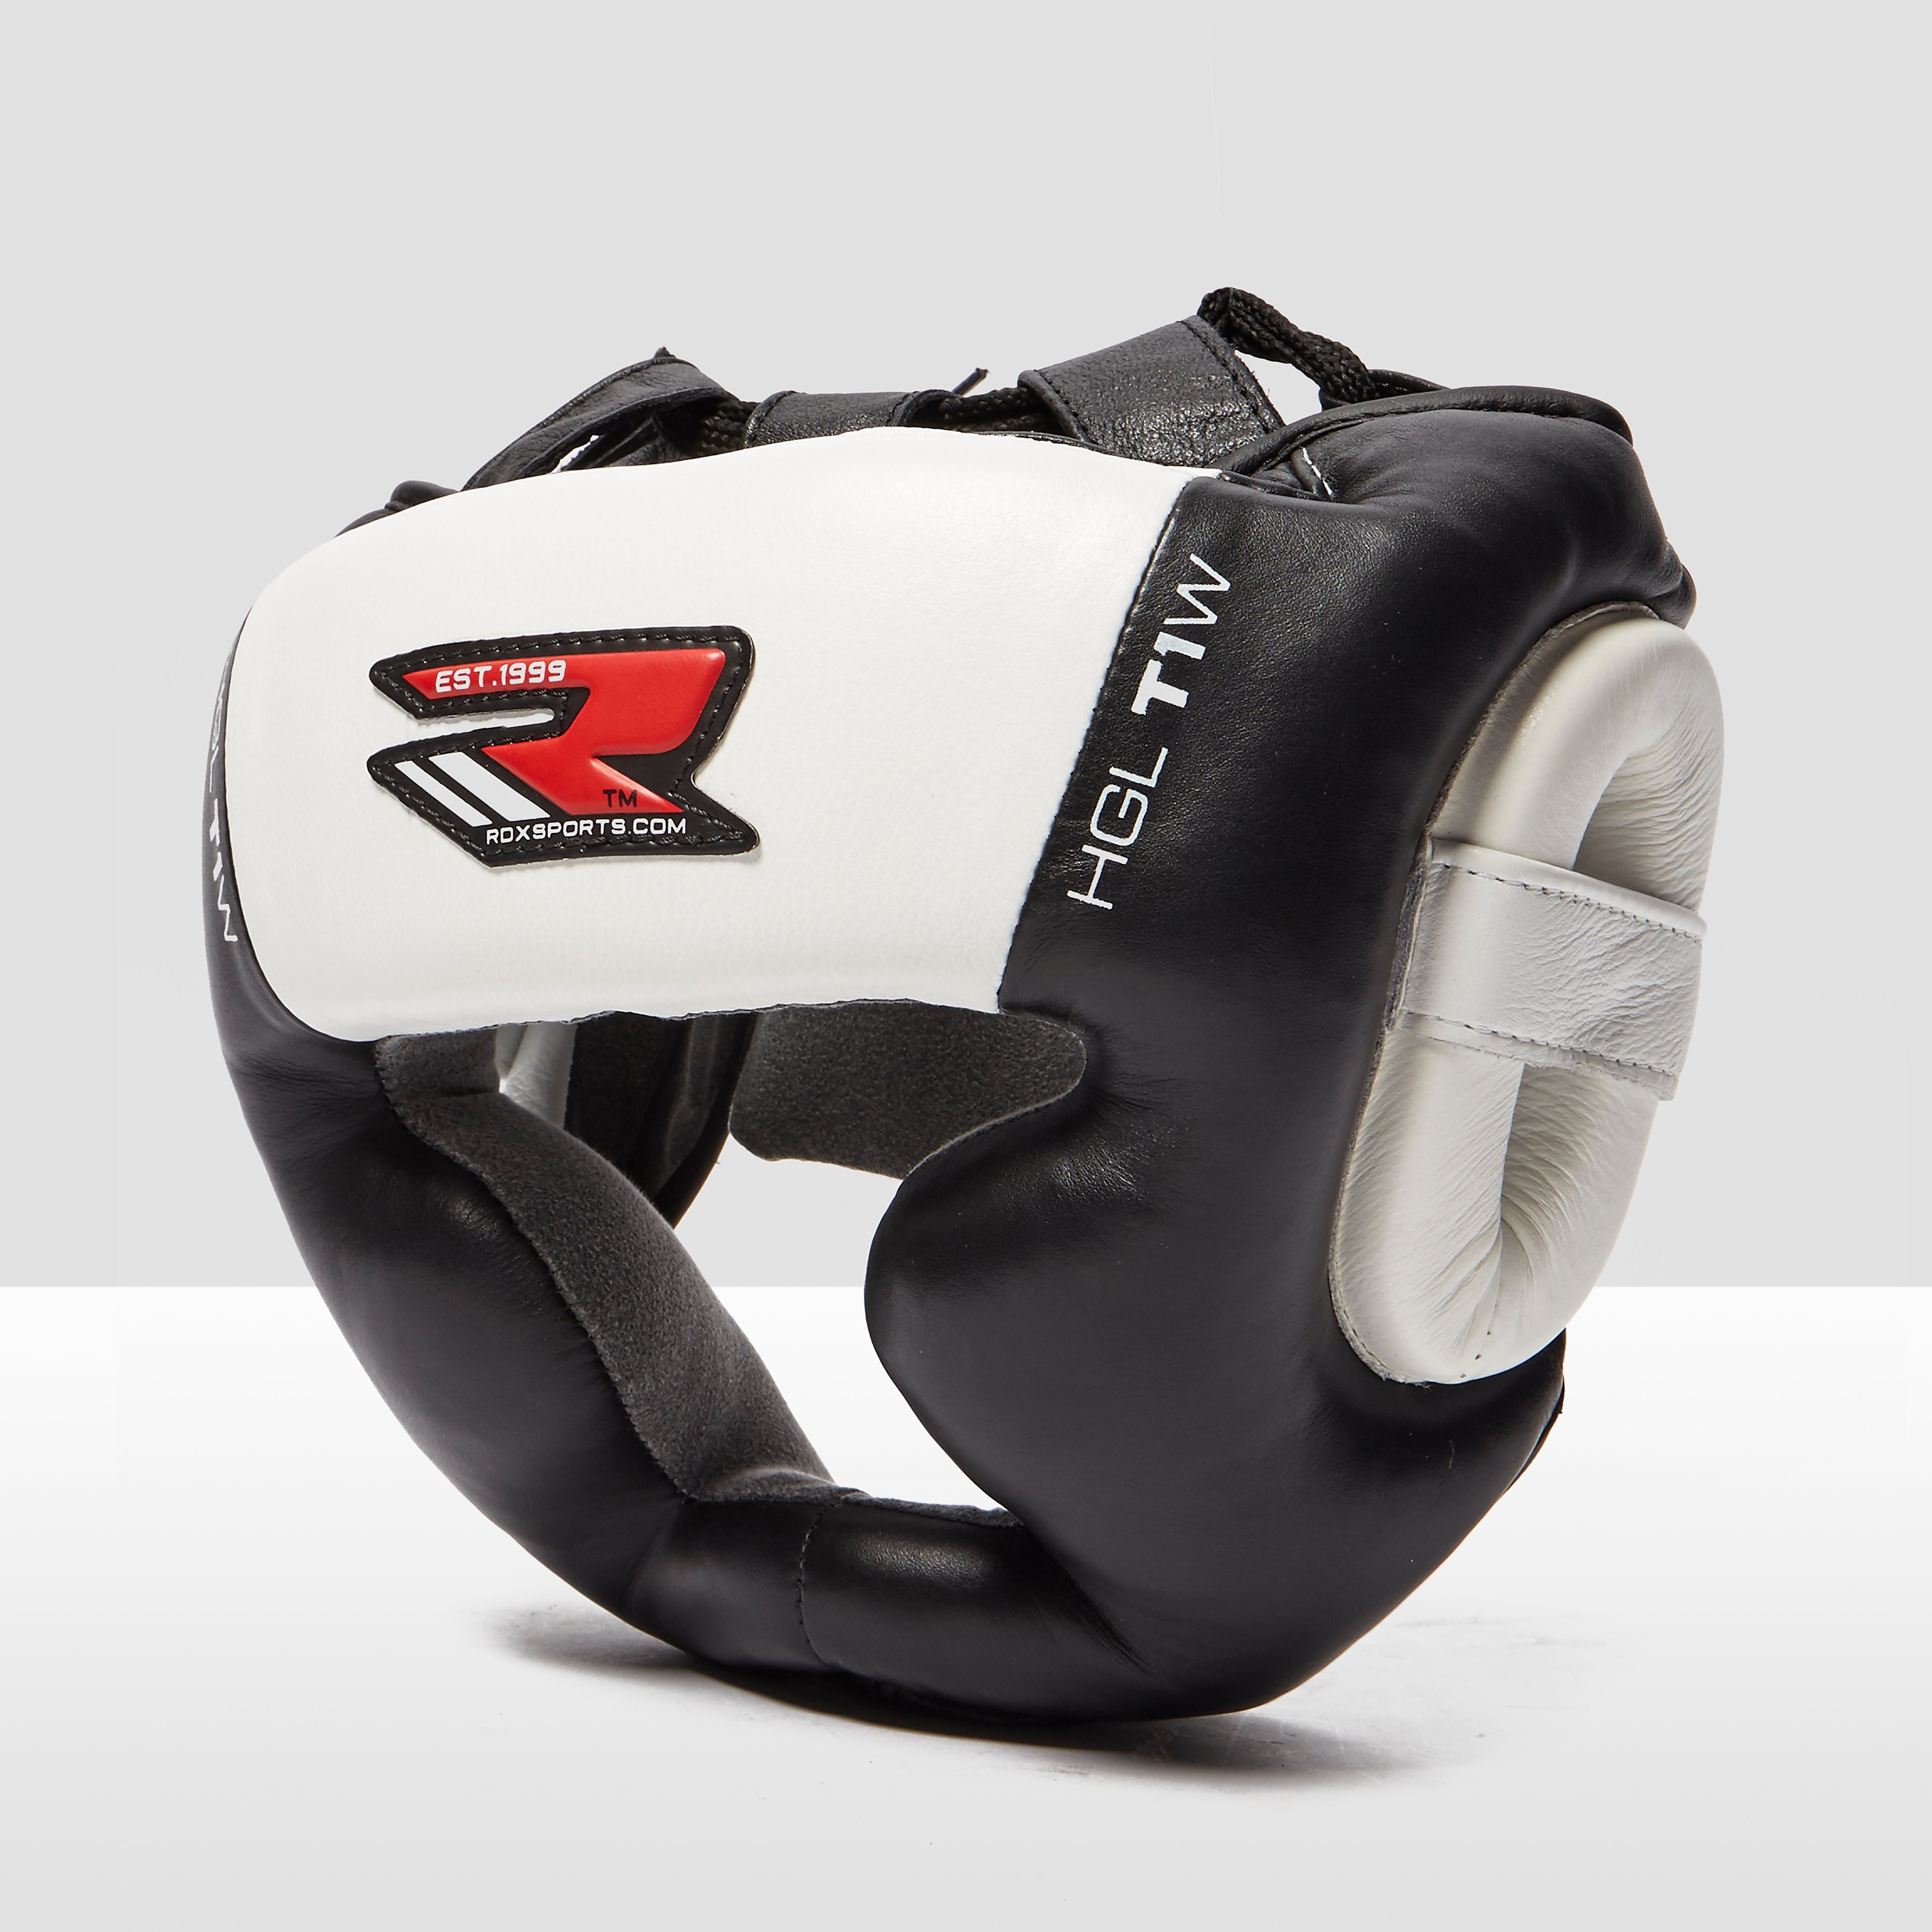 Rdx inc Zero Impact Leather Adult Head Guard